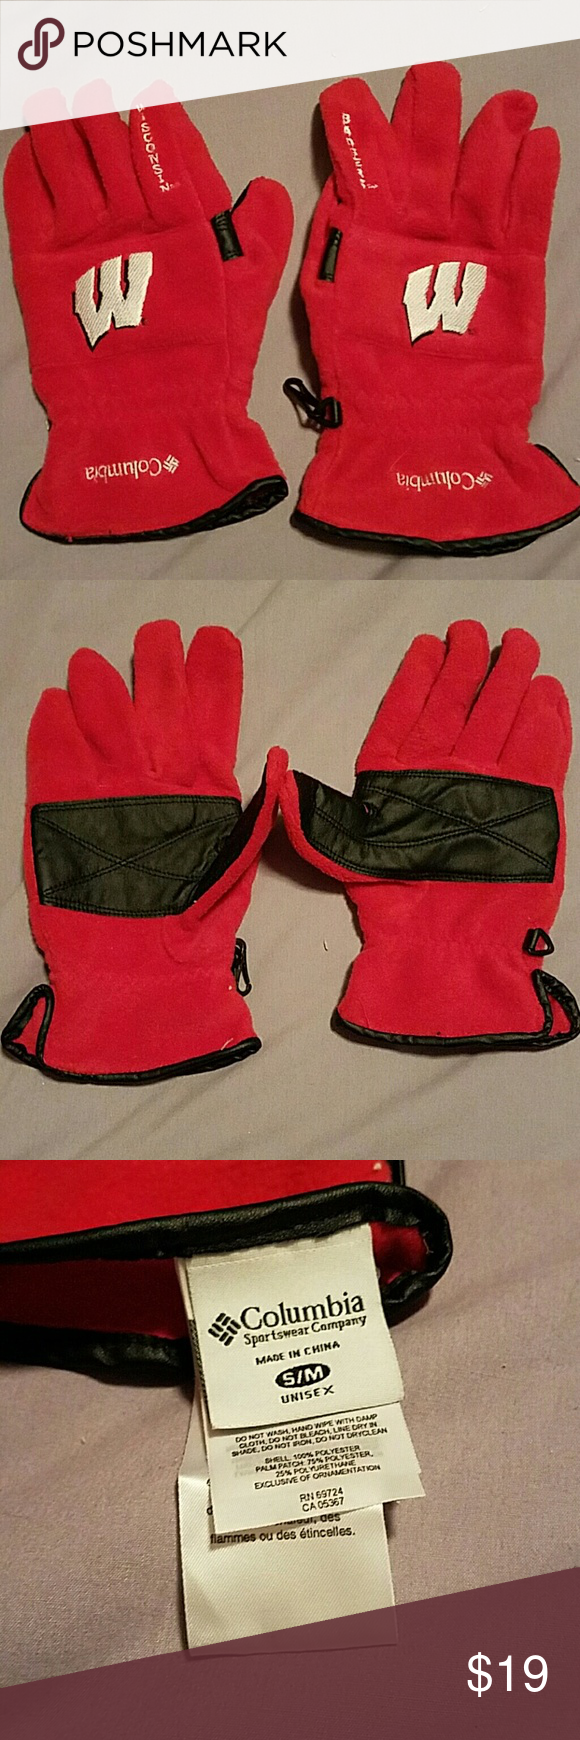 Very mens gloves - Wisconsin Badgers Columbia Gloves